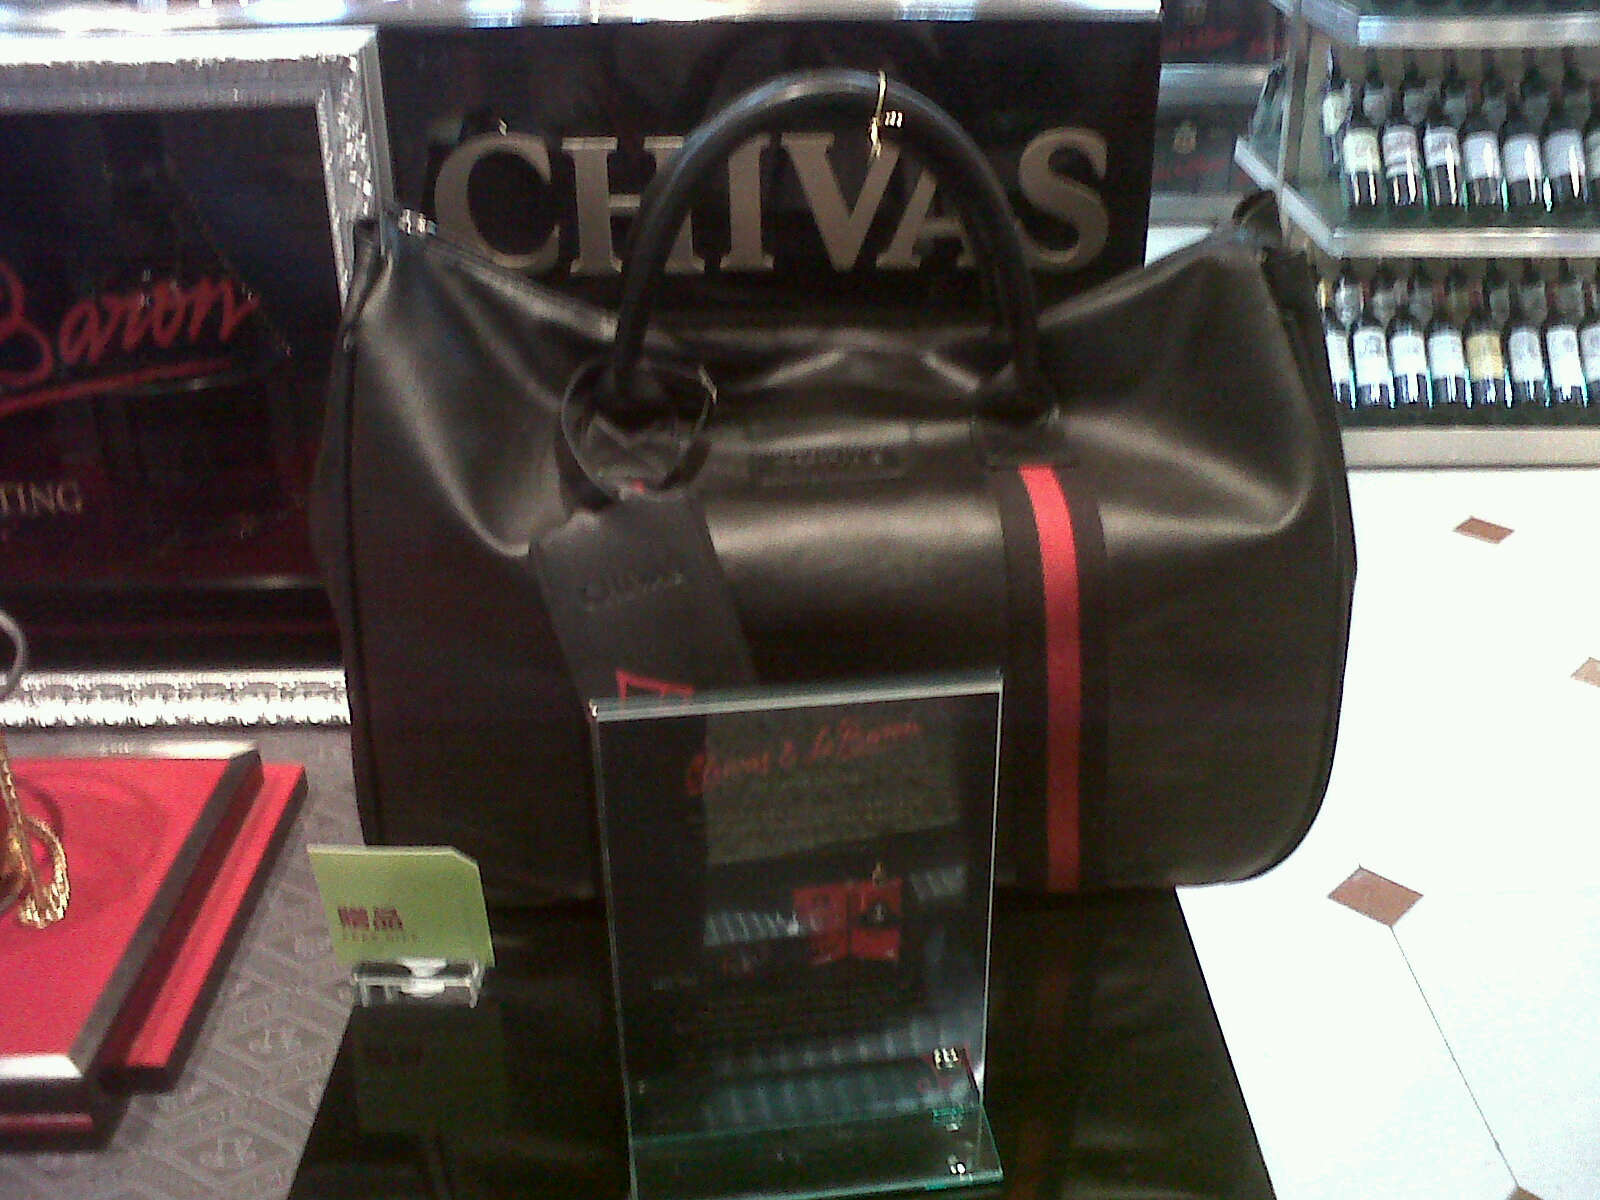 48d667281 Duty Free Promotion – Gift Leather Bag by Chivas